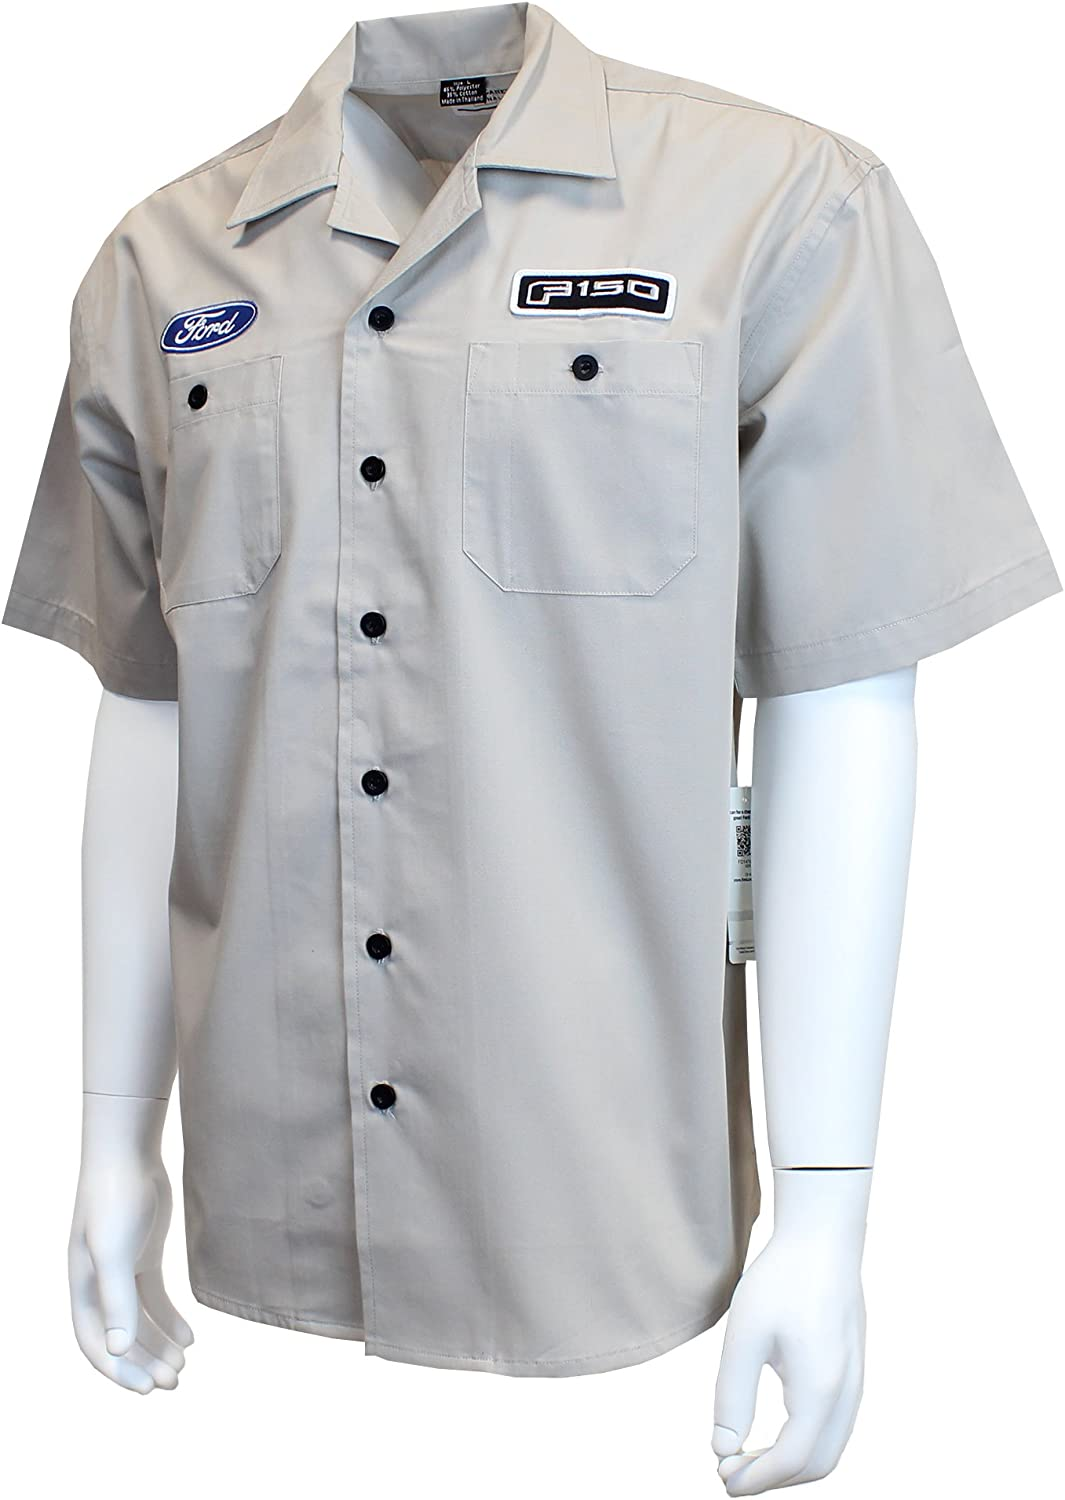 Button Up Collared Short Sleeve Mechanic Camp//Club Shirt Grey /& Black David Carey Ford Performance Pit Crew Shirt